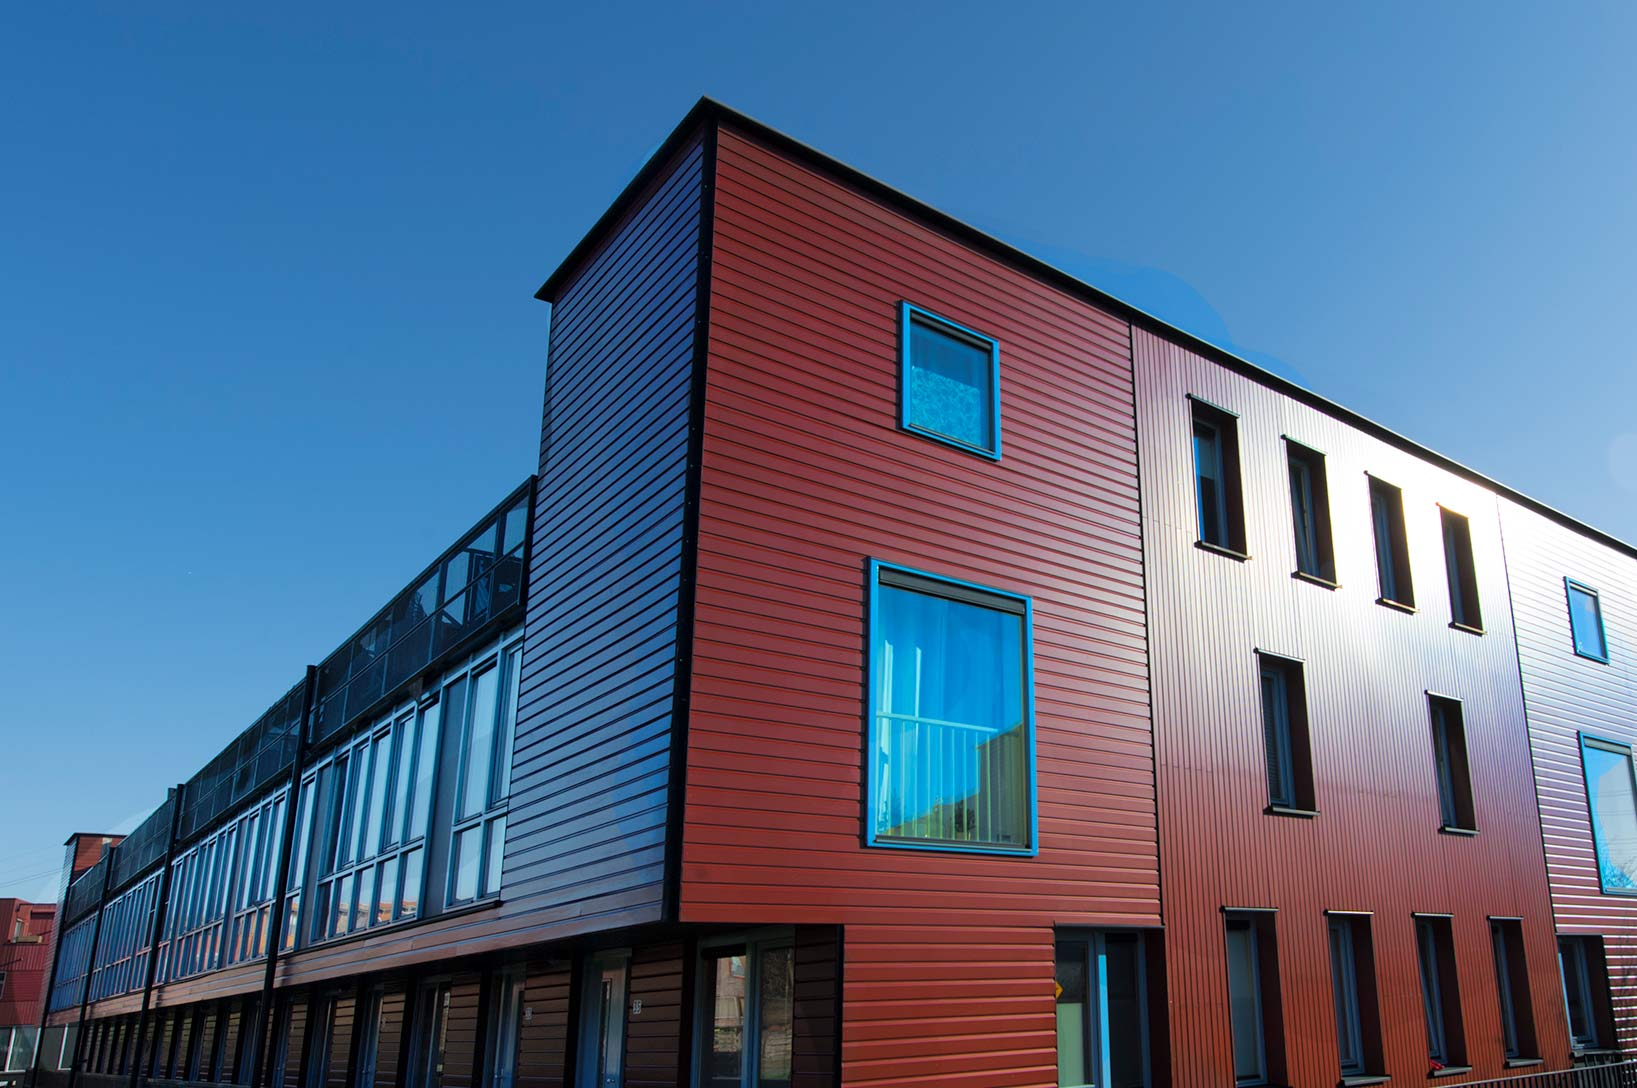 Accoya Cladding – Features, Benefits & Uses of Modified Wood